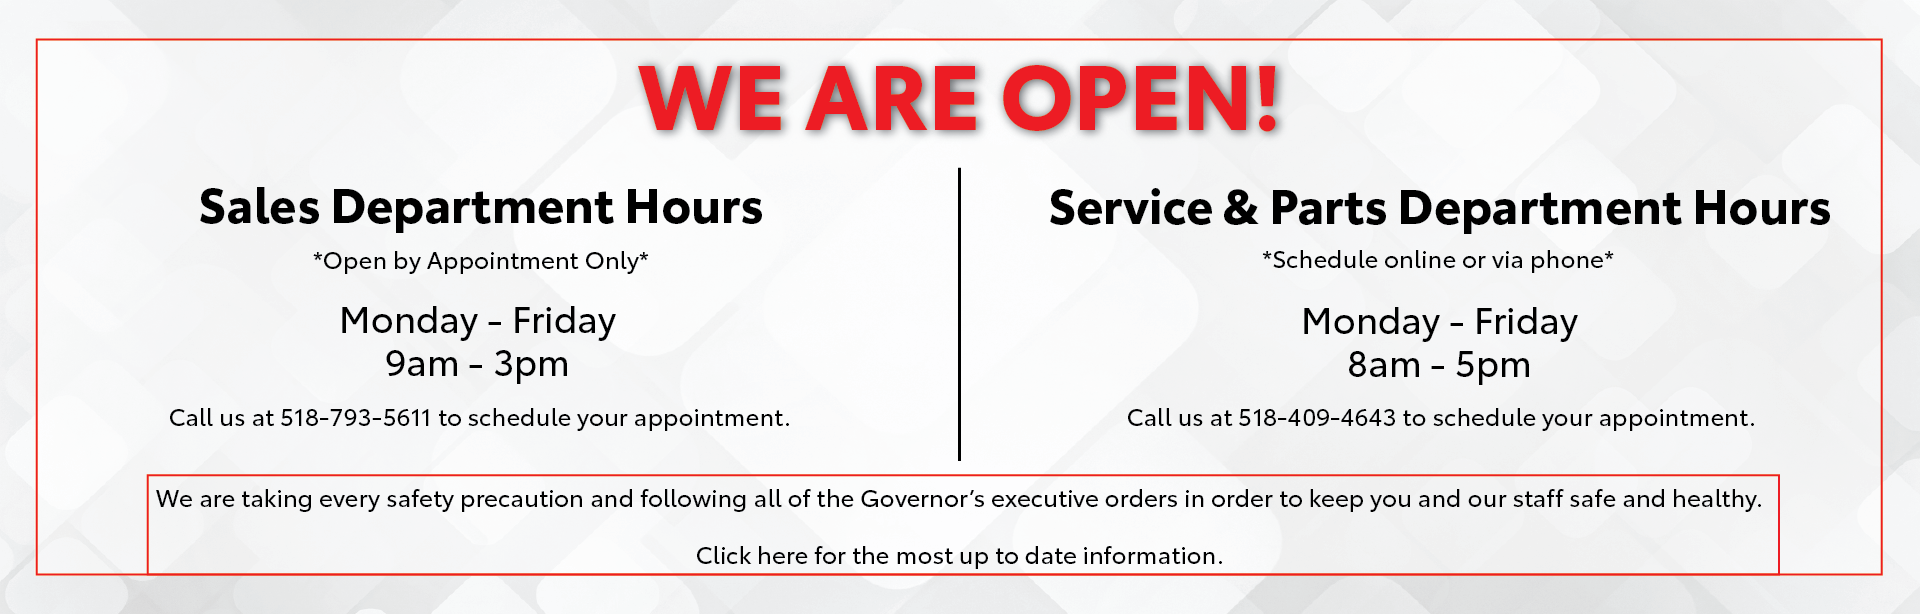 We are open for sales and service.